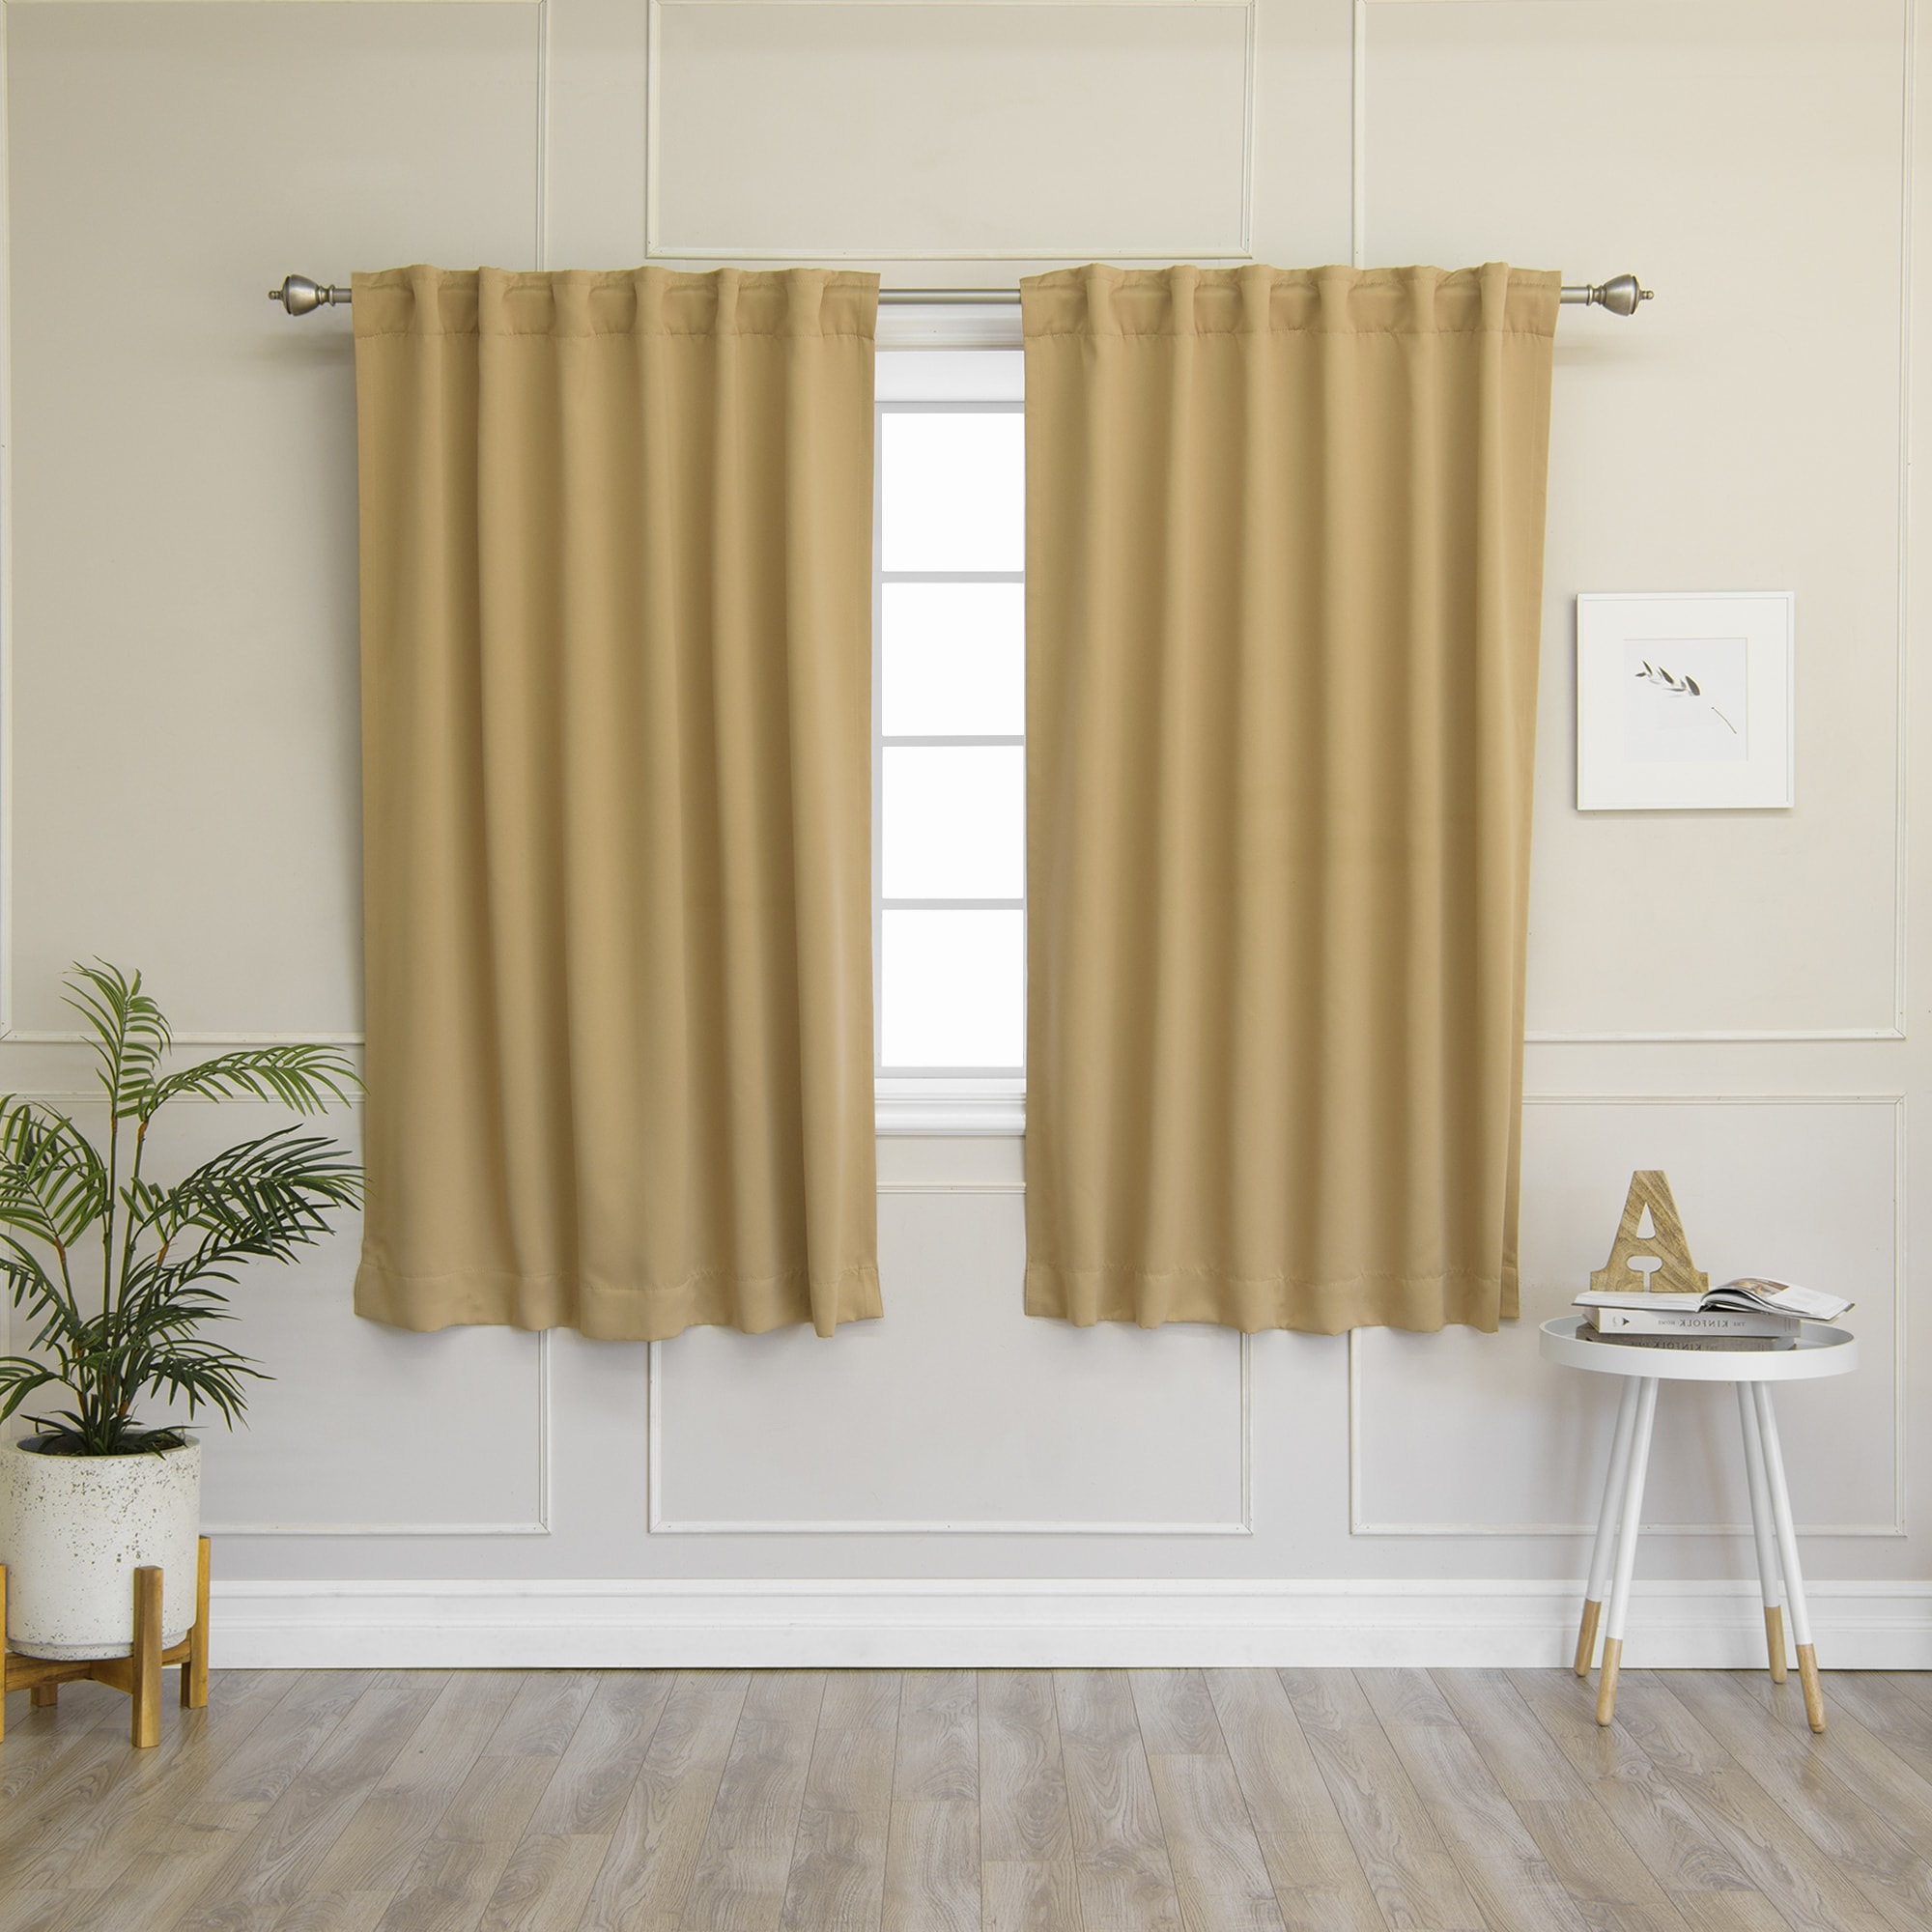 Solid Insulated Thermal Blackout Curtain Panel Pairs Pertaining To Widely Used Aurora Home Solid Insulated Thermal 63 Inch Blackout Curtain (View 10 of 20)